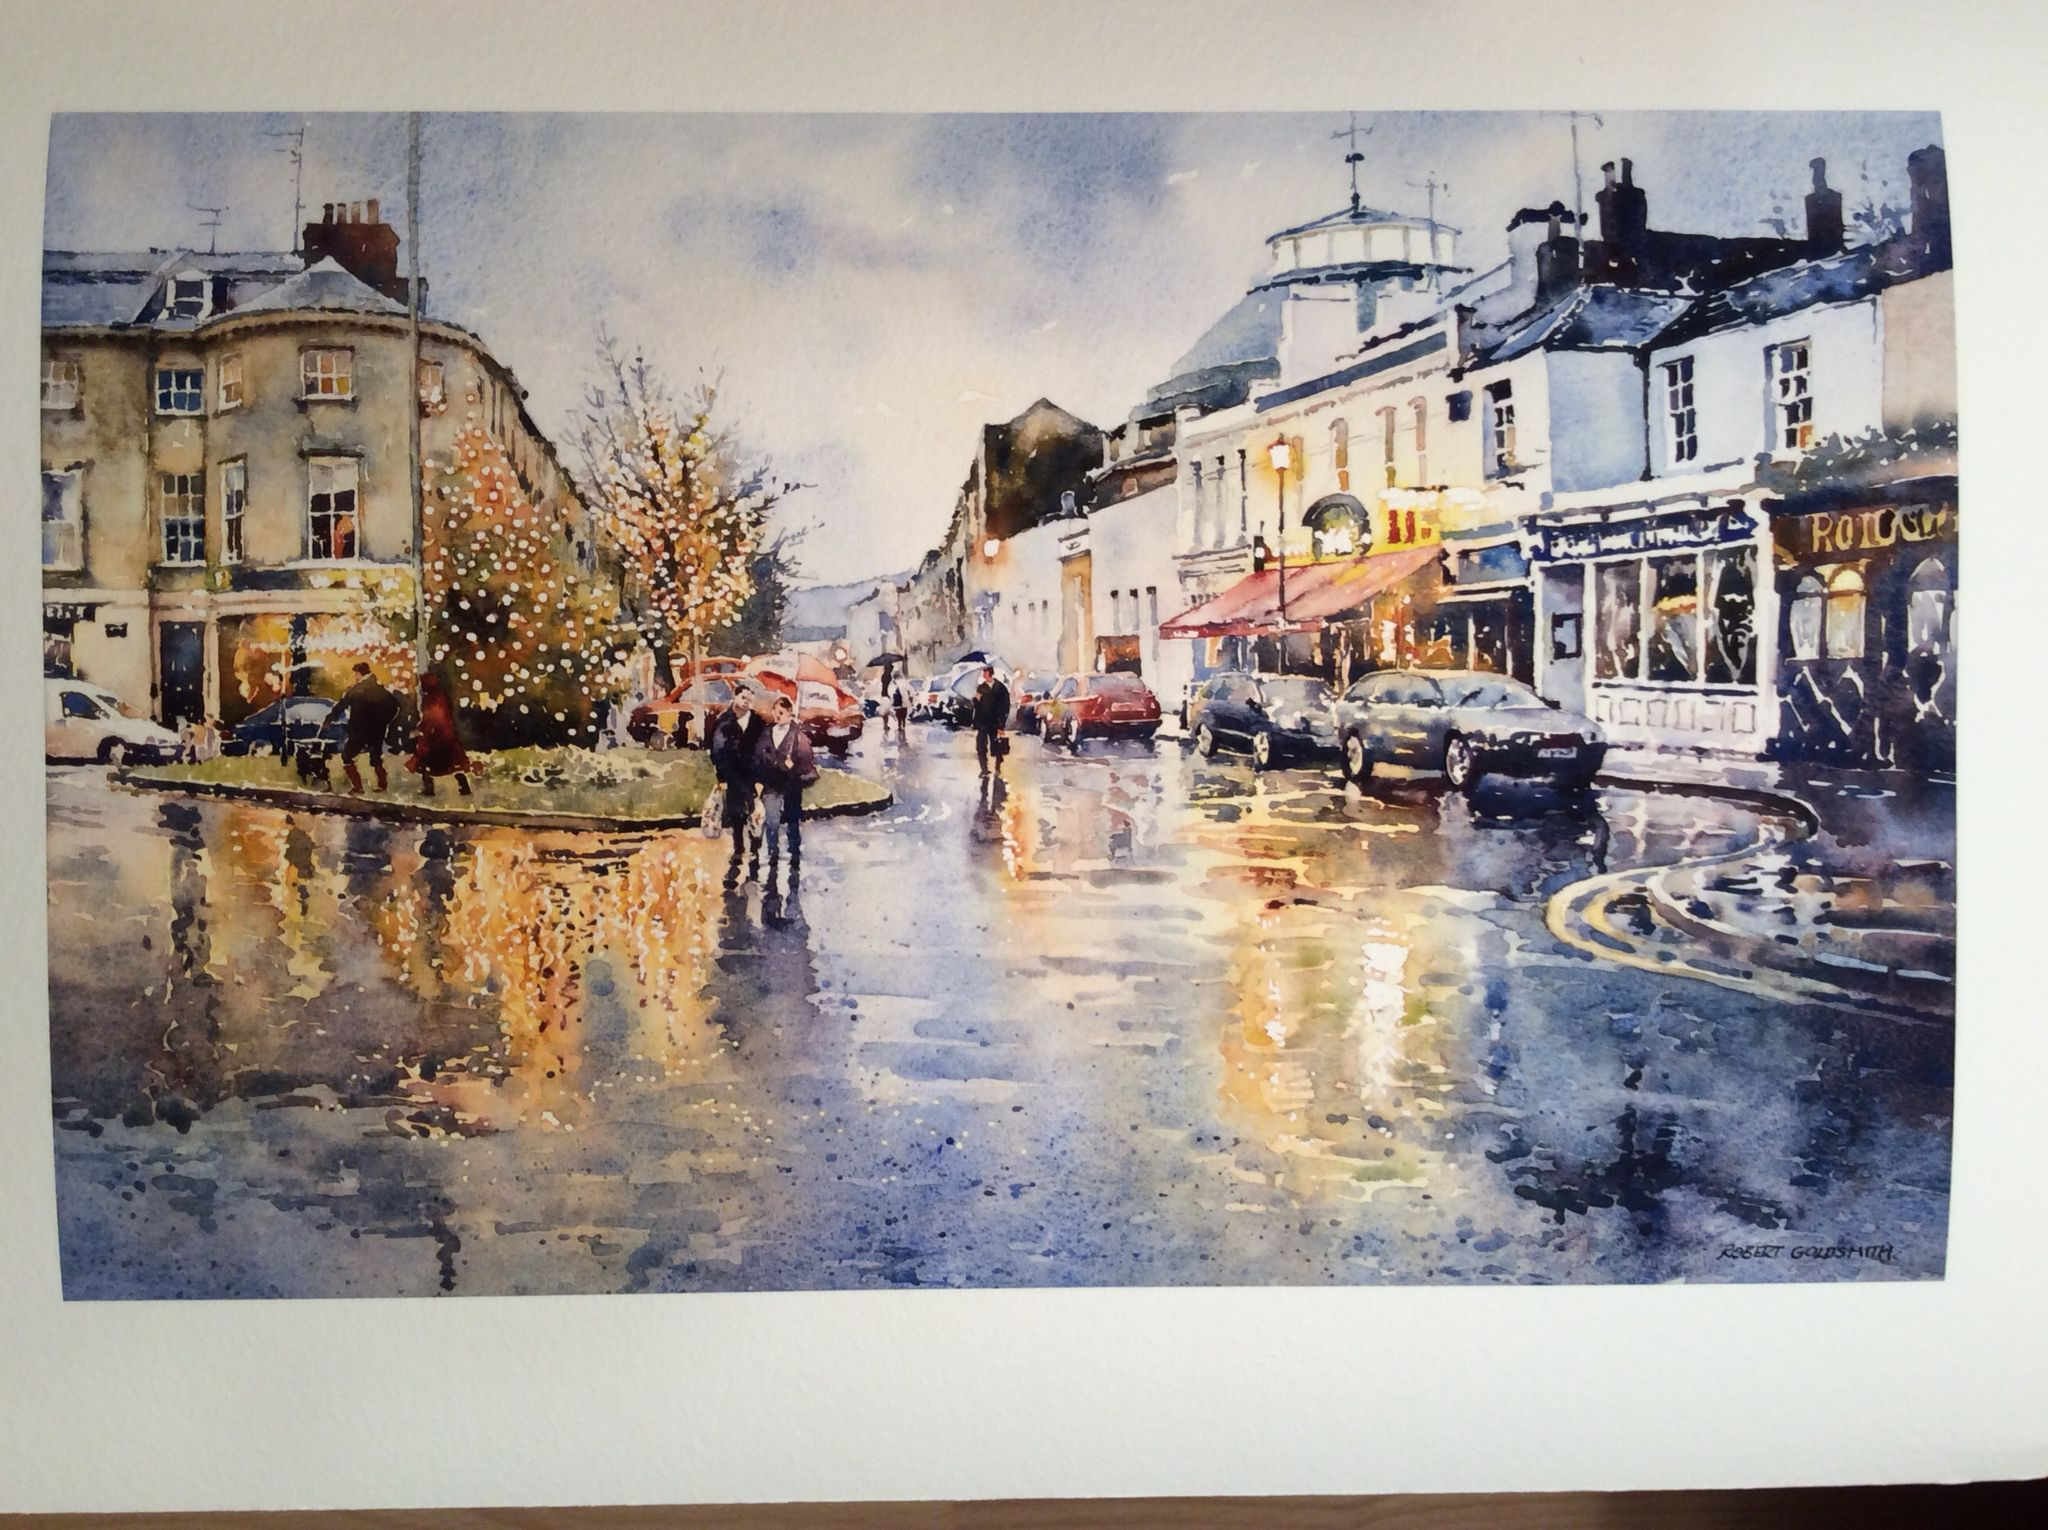 Watercolor artist magazine customer service - Looking Over To The Montpellier Wine Bar Watercolour By Robert Goldsmith